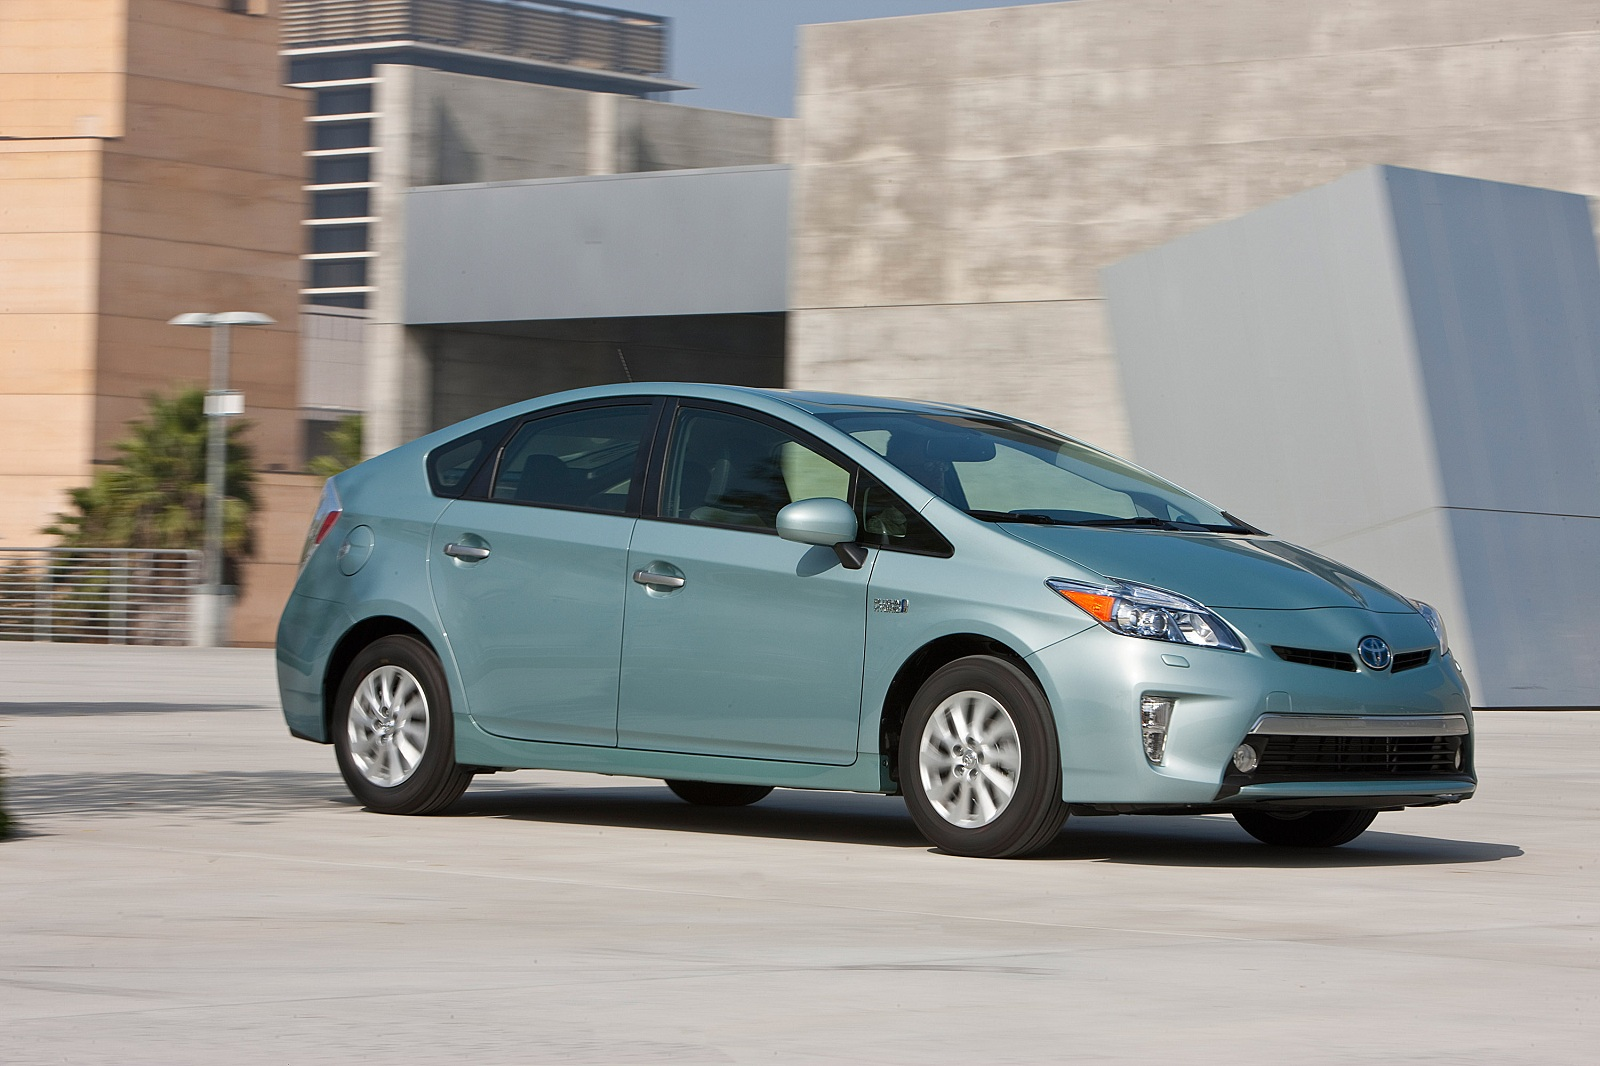 Toyota Prius, Plug-In, Lexus CT200h recalled for airbag issues, not